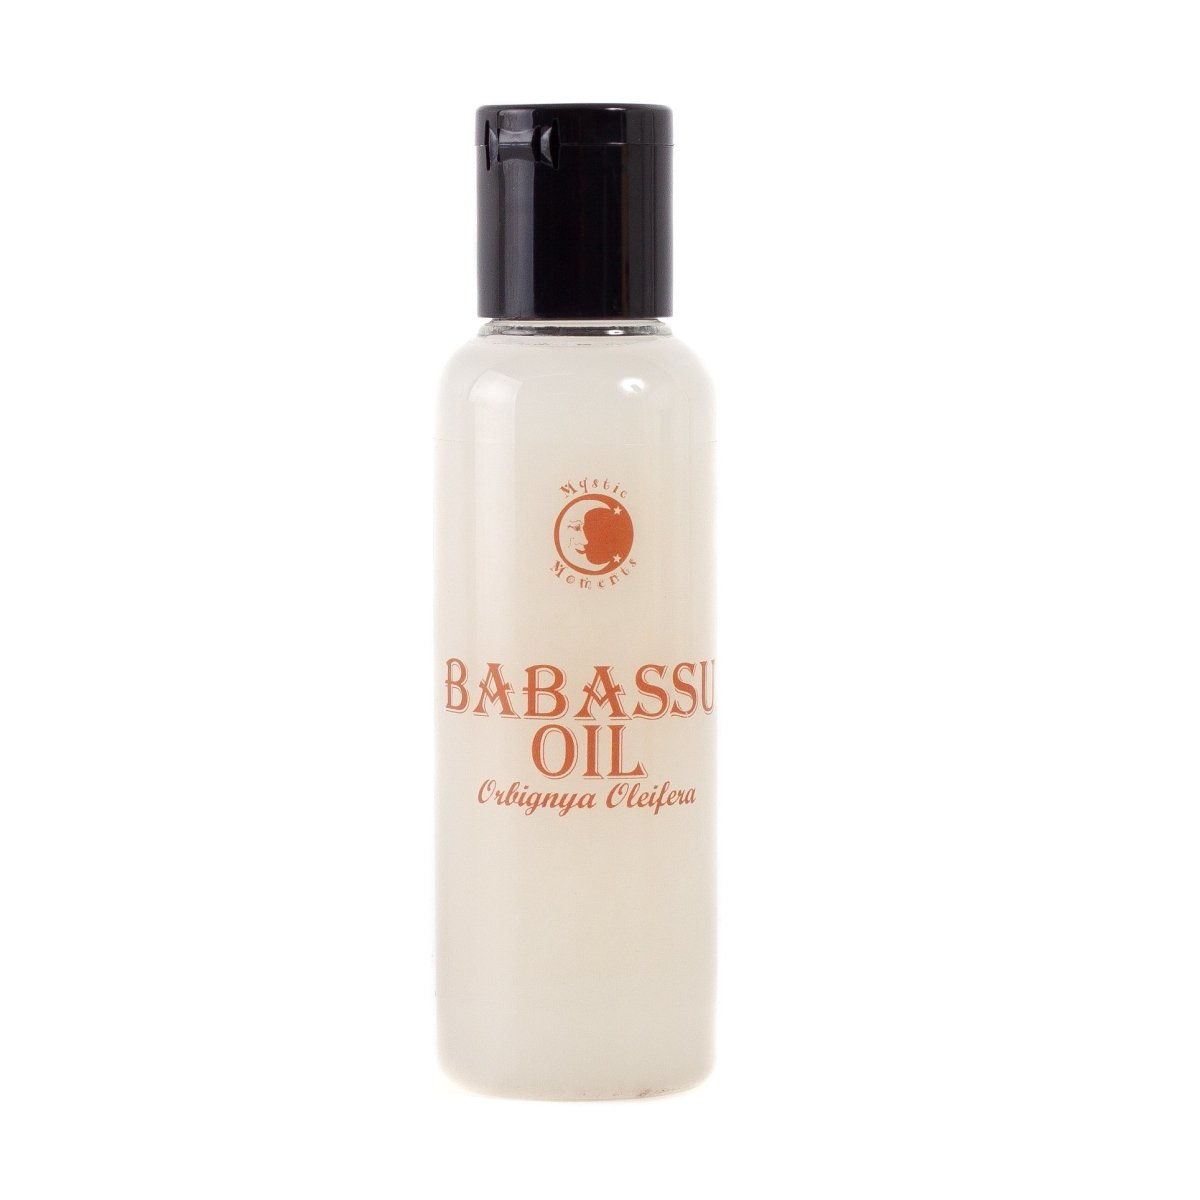 Babassu Refined Carrier Oil - Mystic Moments UK